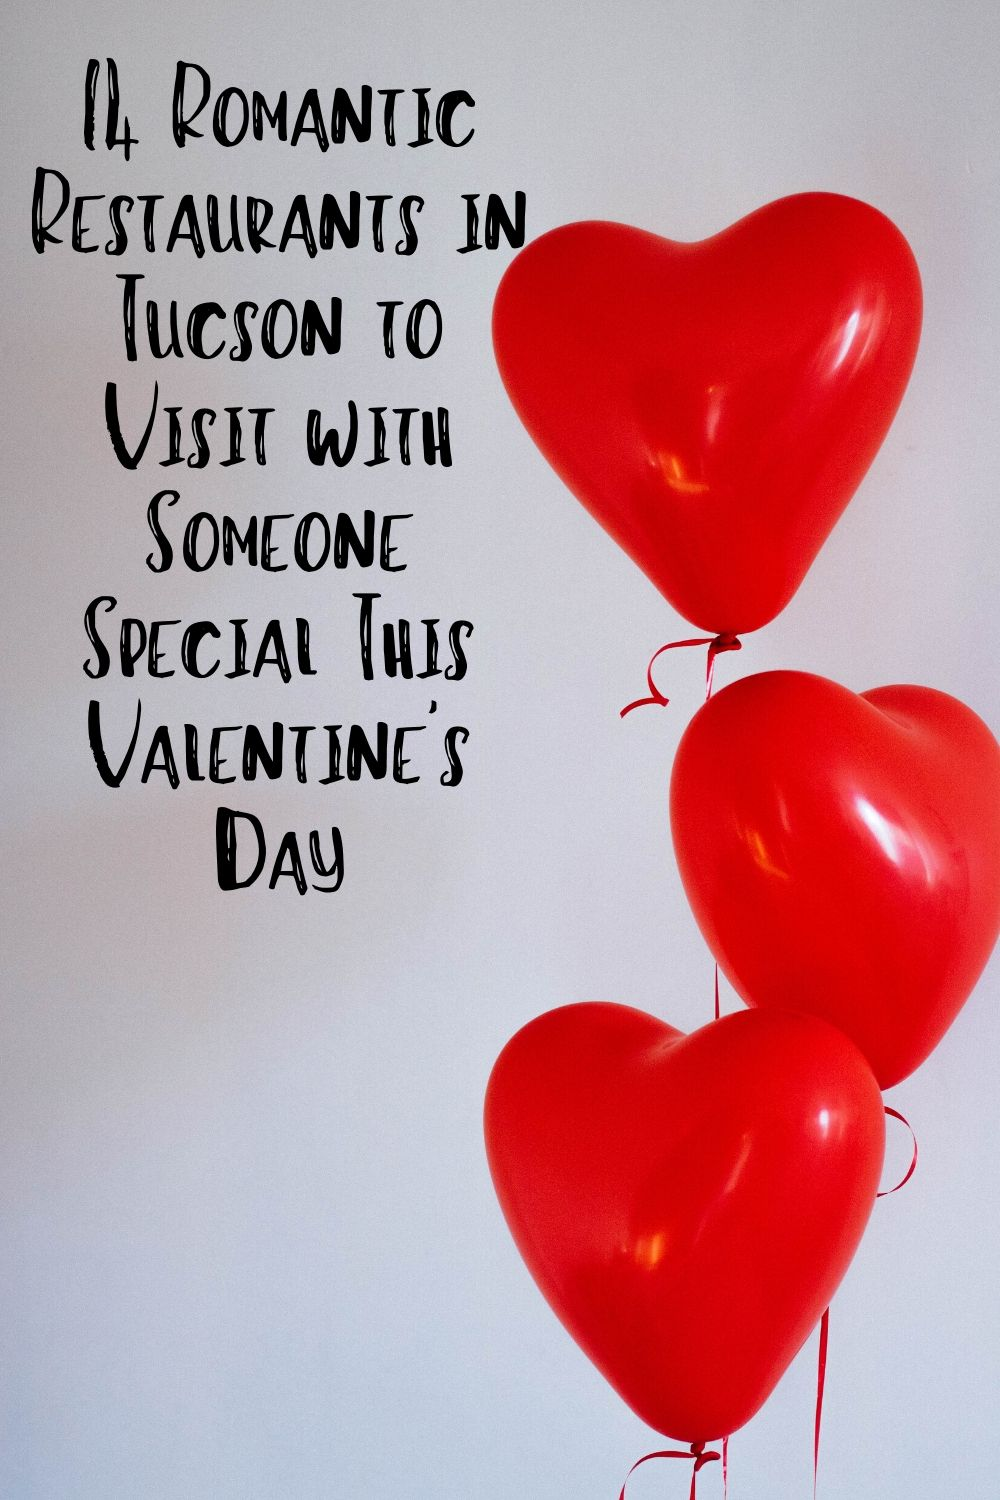 If you are new to Tucson living and are looking for recommendations on Tucson restaurants that will make Valentine's Day in Tucson the best one yet...we've got you covered.